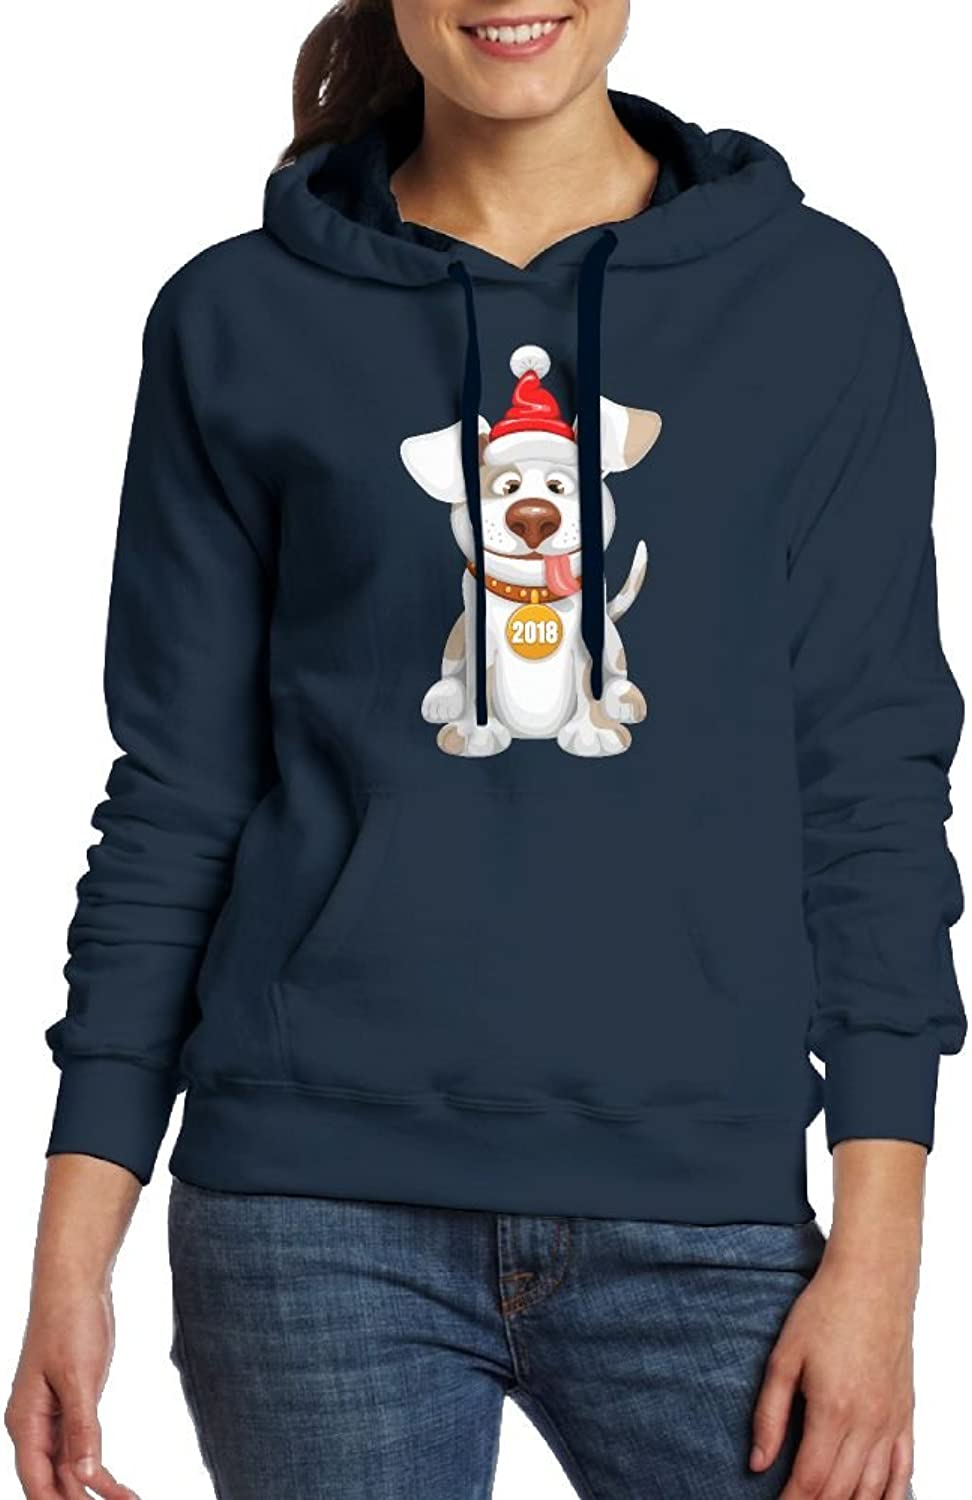 2018 Dog Year Design Womens Geek Long Sleeve Hoodie With Kangaroo Pocket